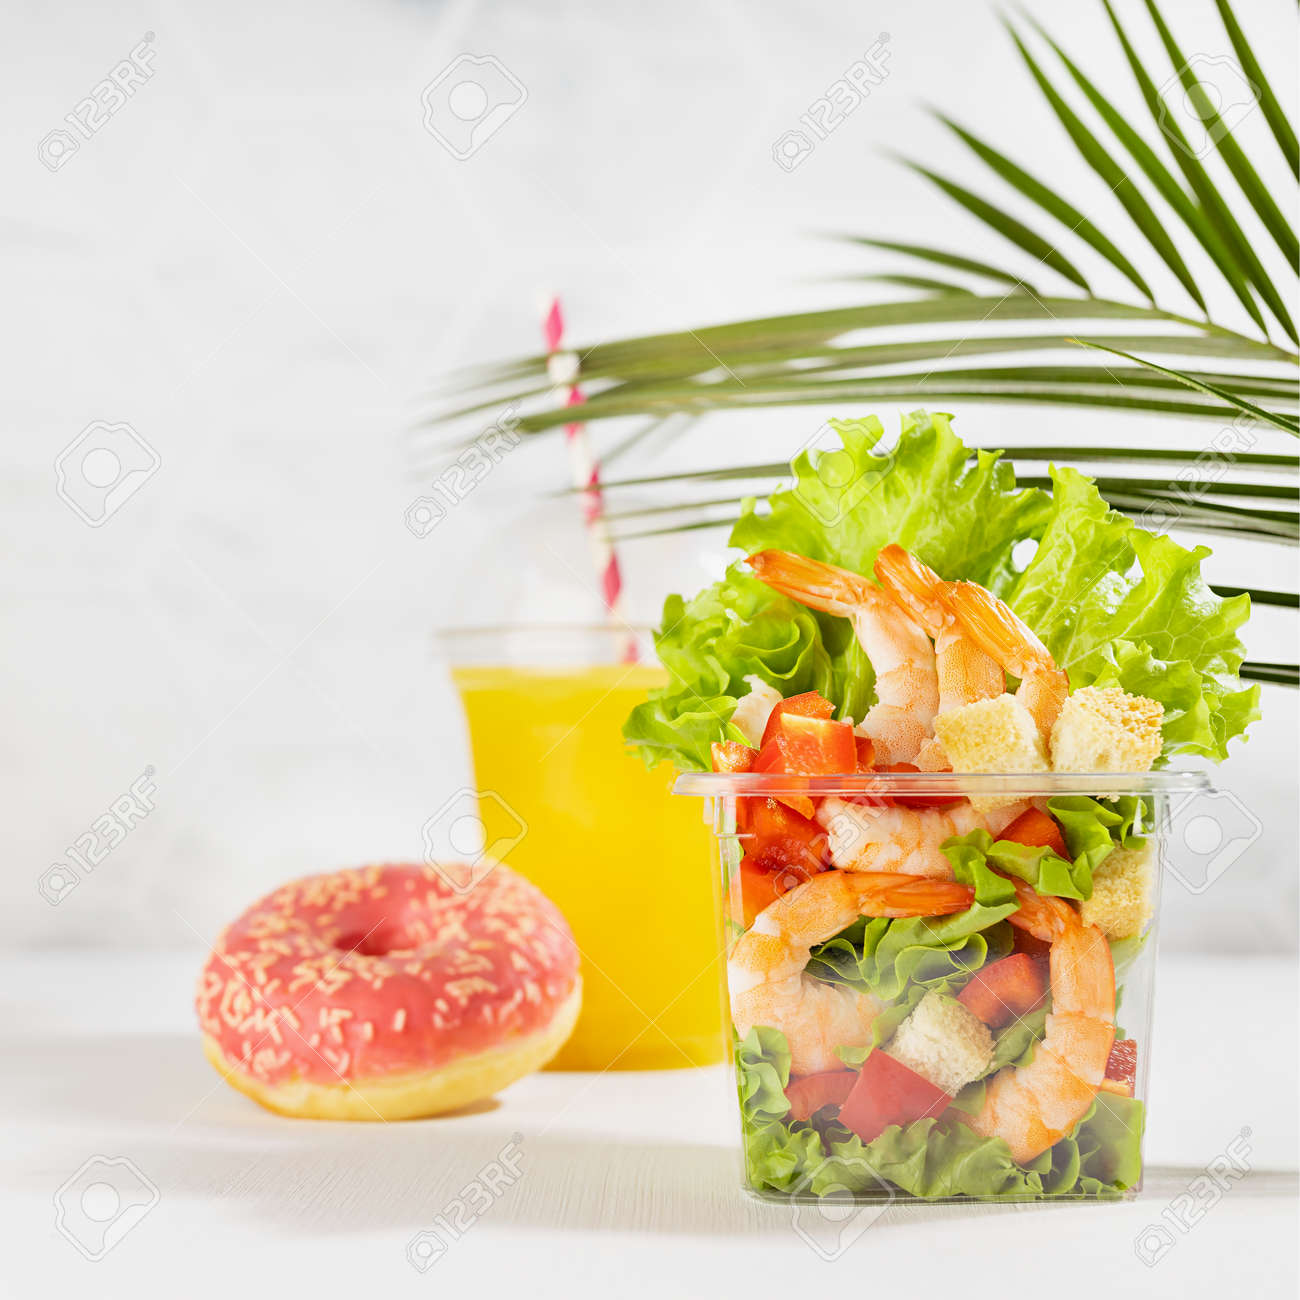 Bright summer lunch set with seafood salad with shrimps, red bell pepper, lettuce, croutons in plastic pack, fresh orange juice, pink donut in white interior with marble tile, palm leaf, square. - 173913716